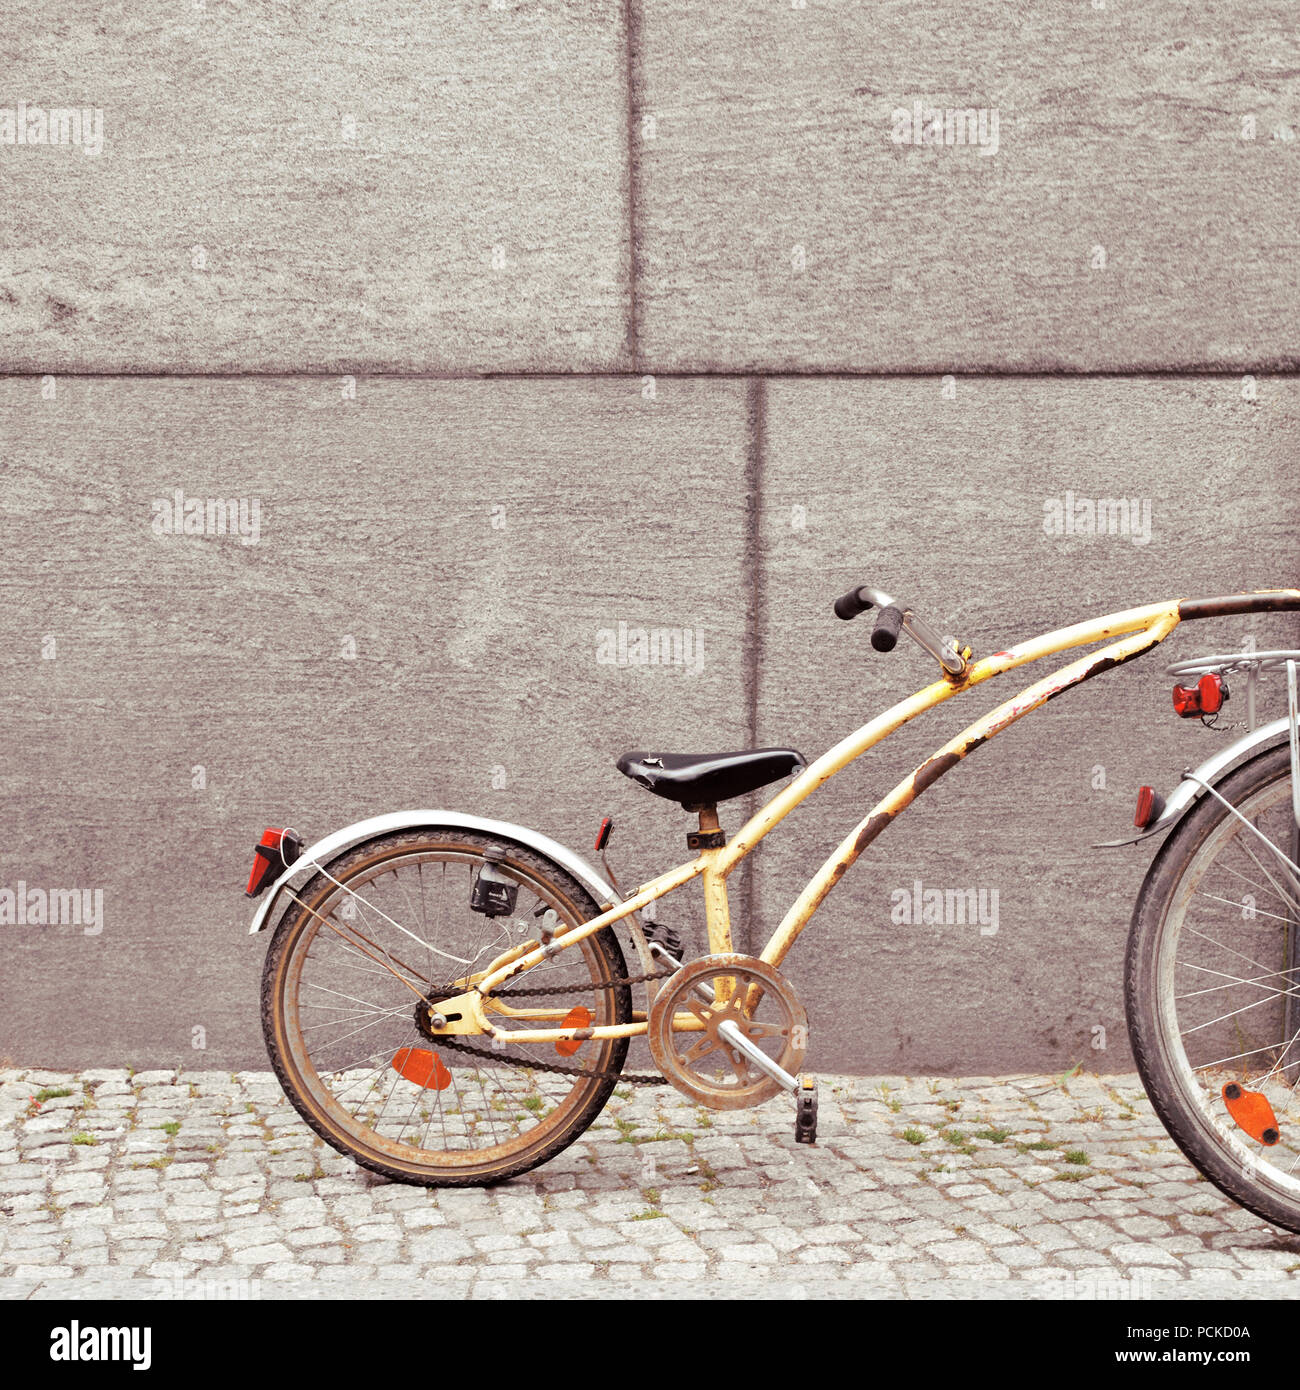 bicycle,children bicycle,bicycle trailers - Stock Image